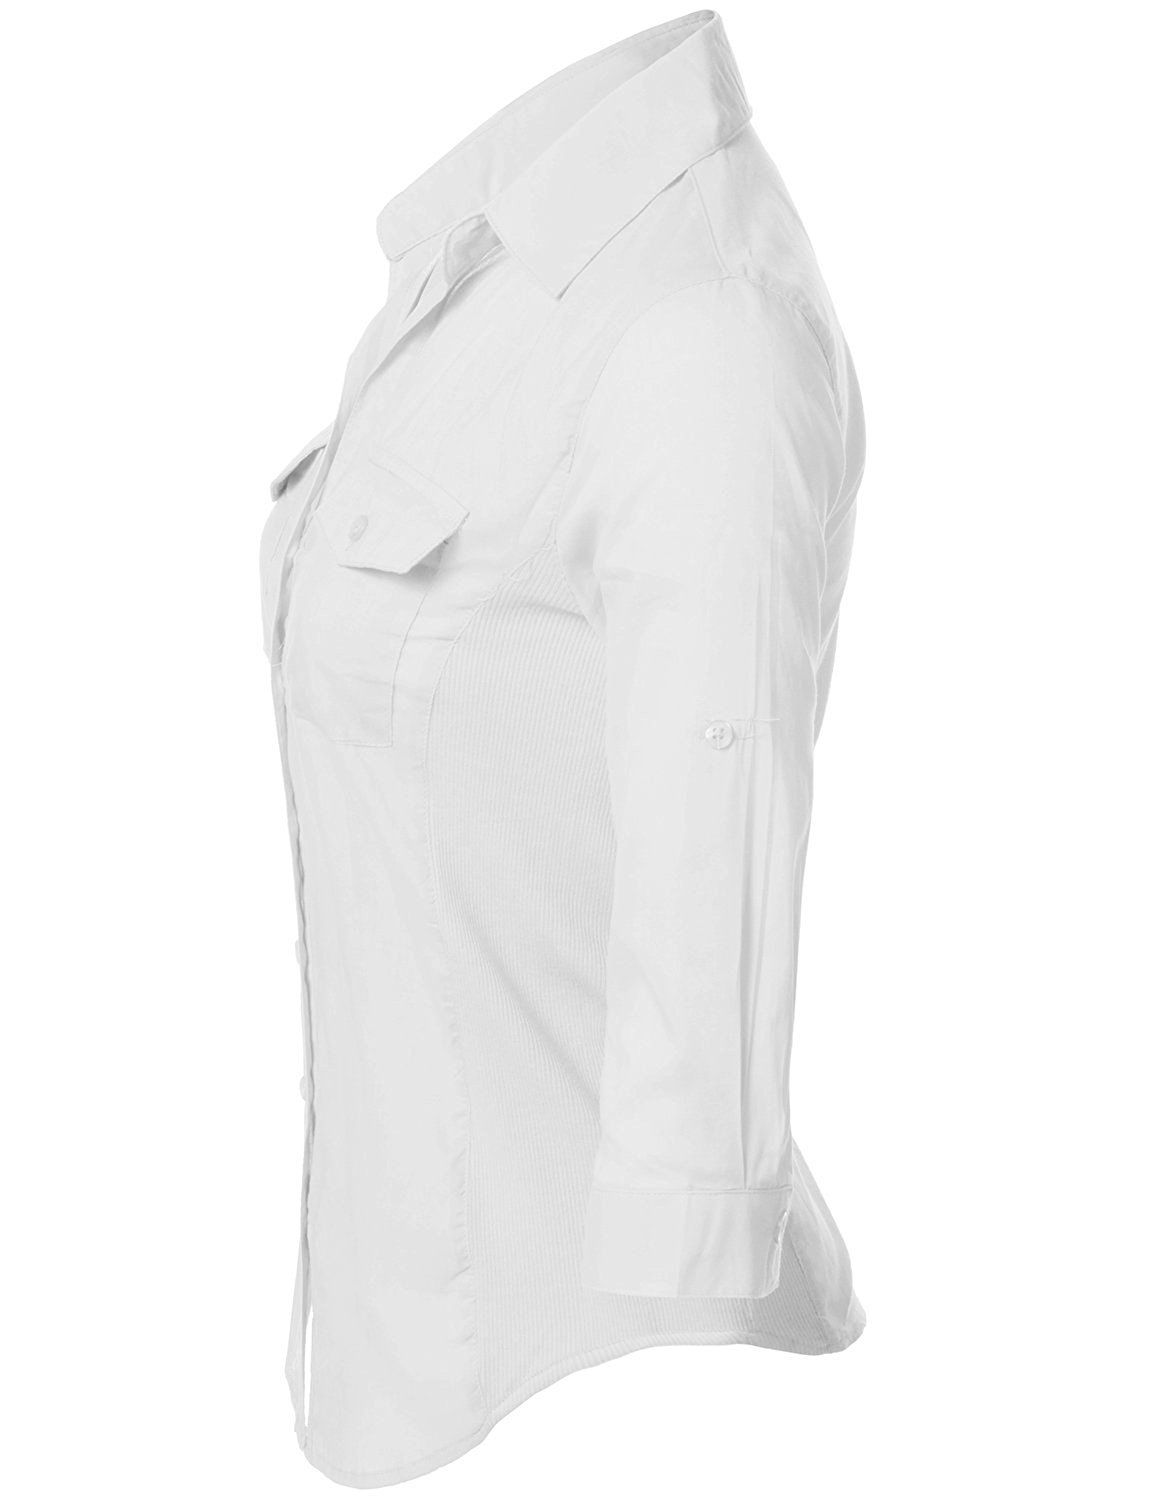 Amazon.com: Junior Size Sheer Thin Lightweight Side Ribbed Panel Basic Button Down Shirts: Clothing